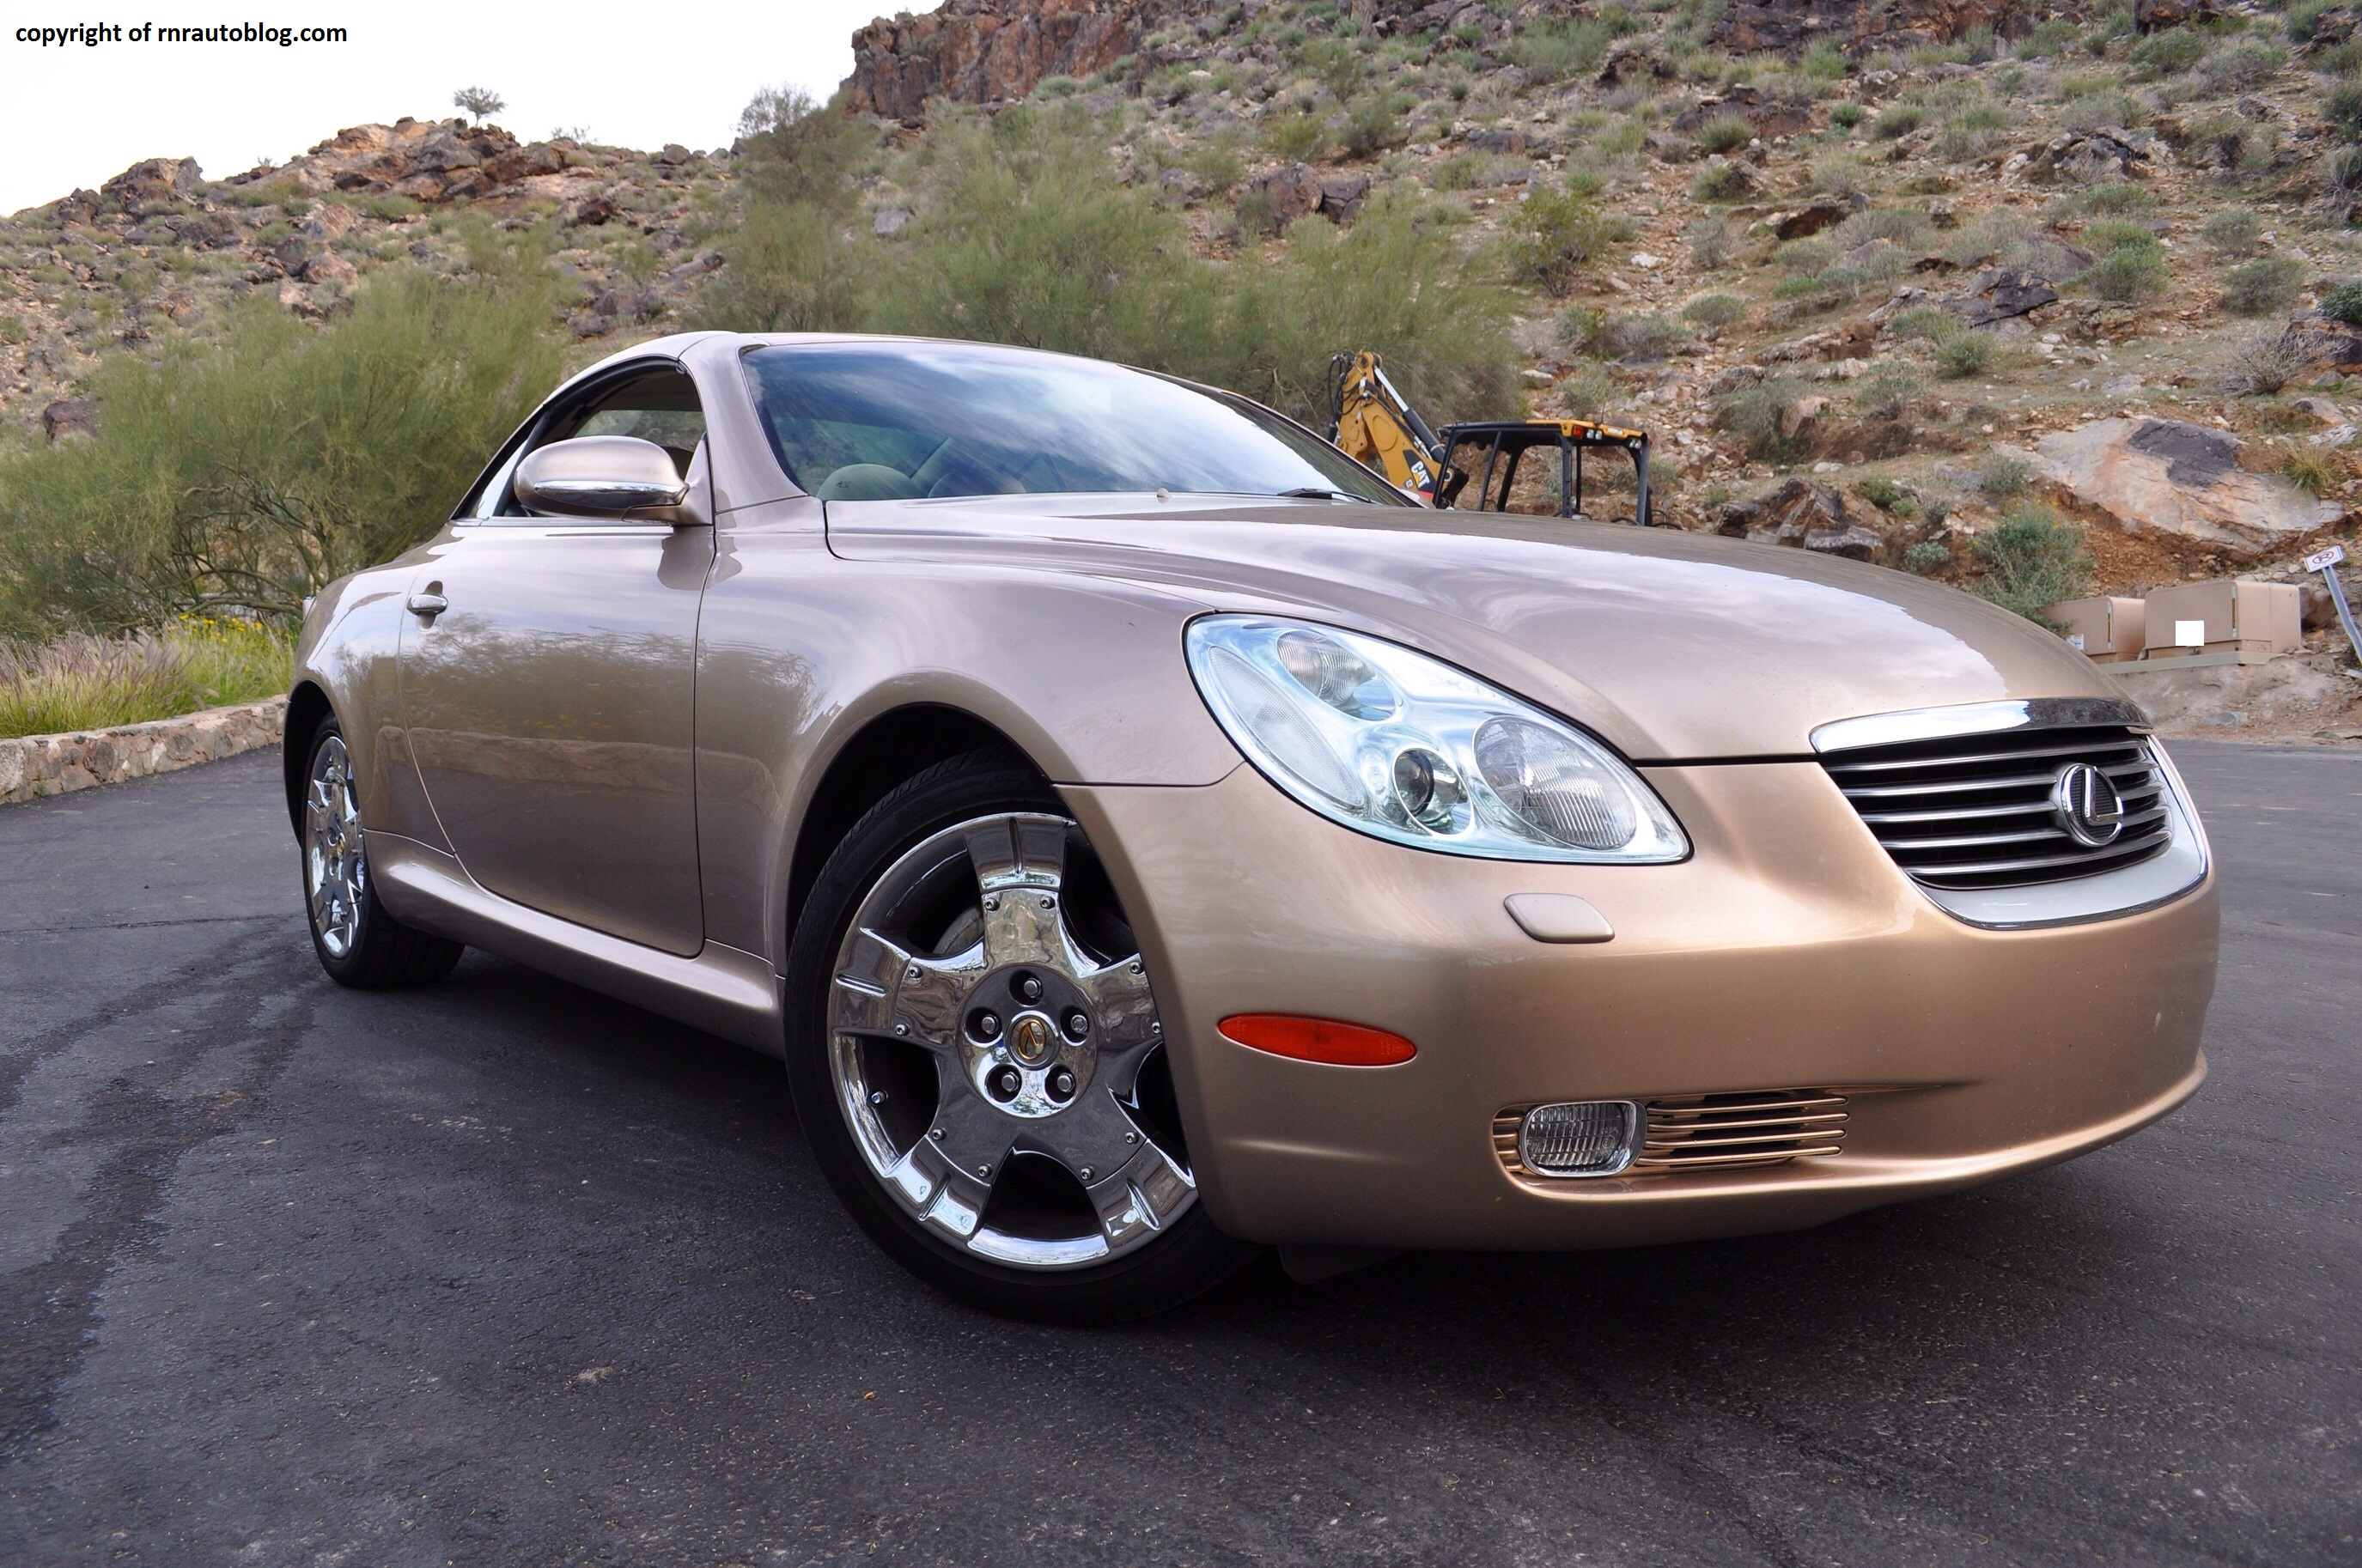 2006 Lexus Sc430 Review Rnr Automotive Blog